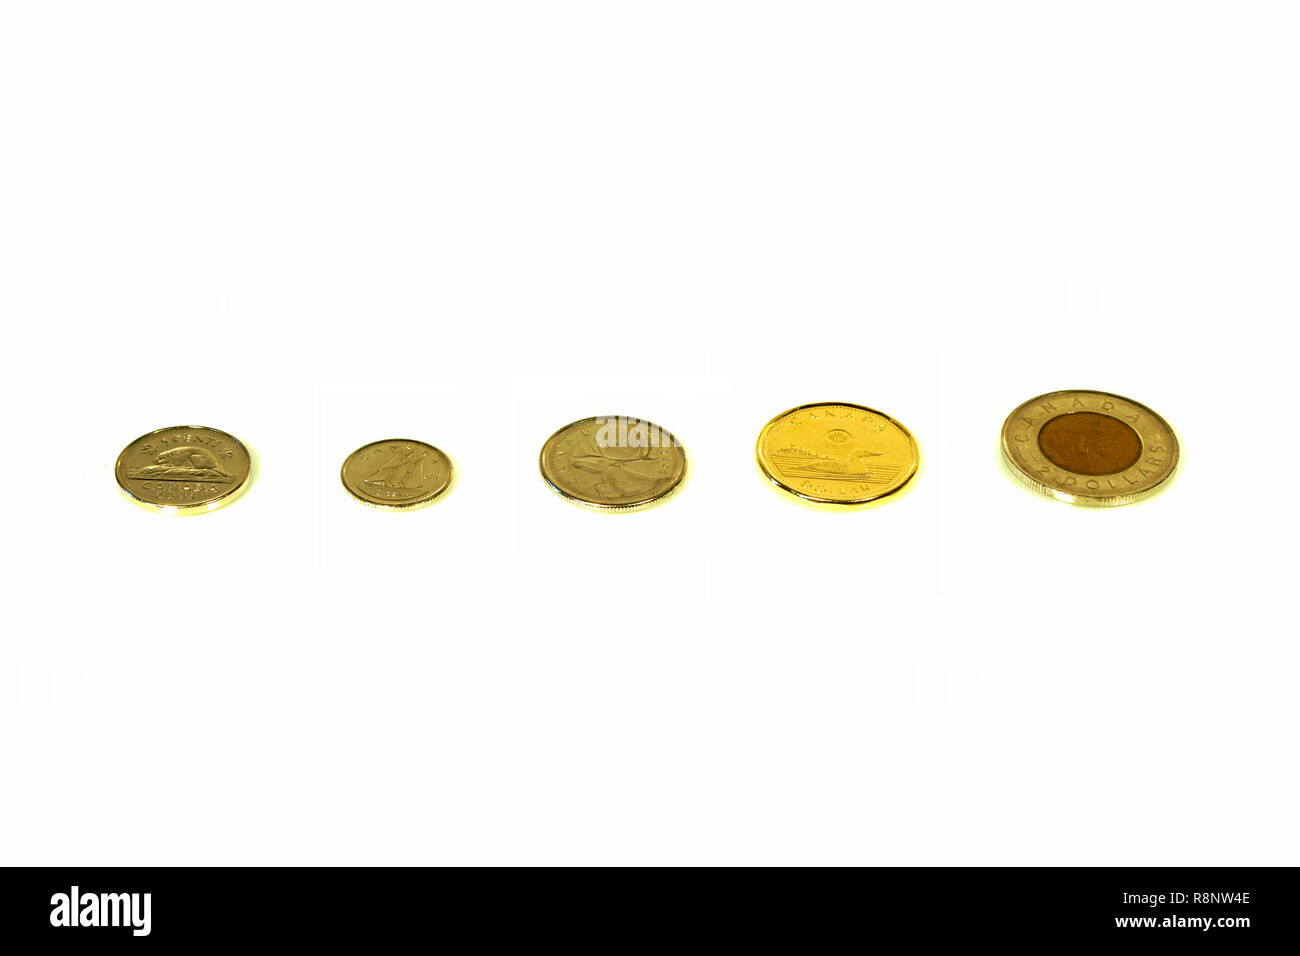 Montreal, Quebec, Canada / Dec, 16th 2018 : Spare change of canadian metal pieces isolated on white. Nickel, dime, quarter, one, two dollar pieces. - Stock Image